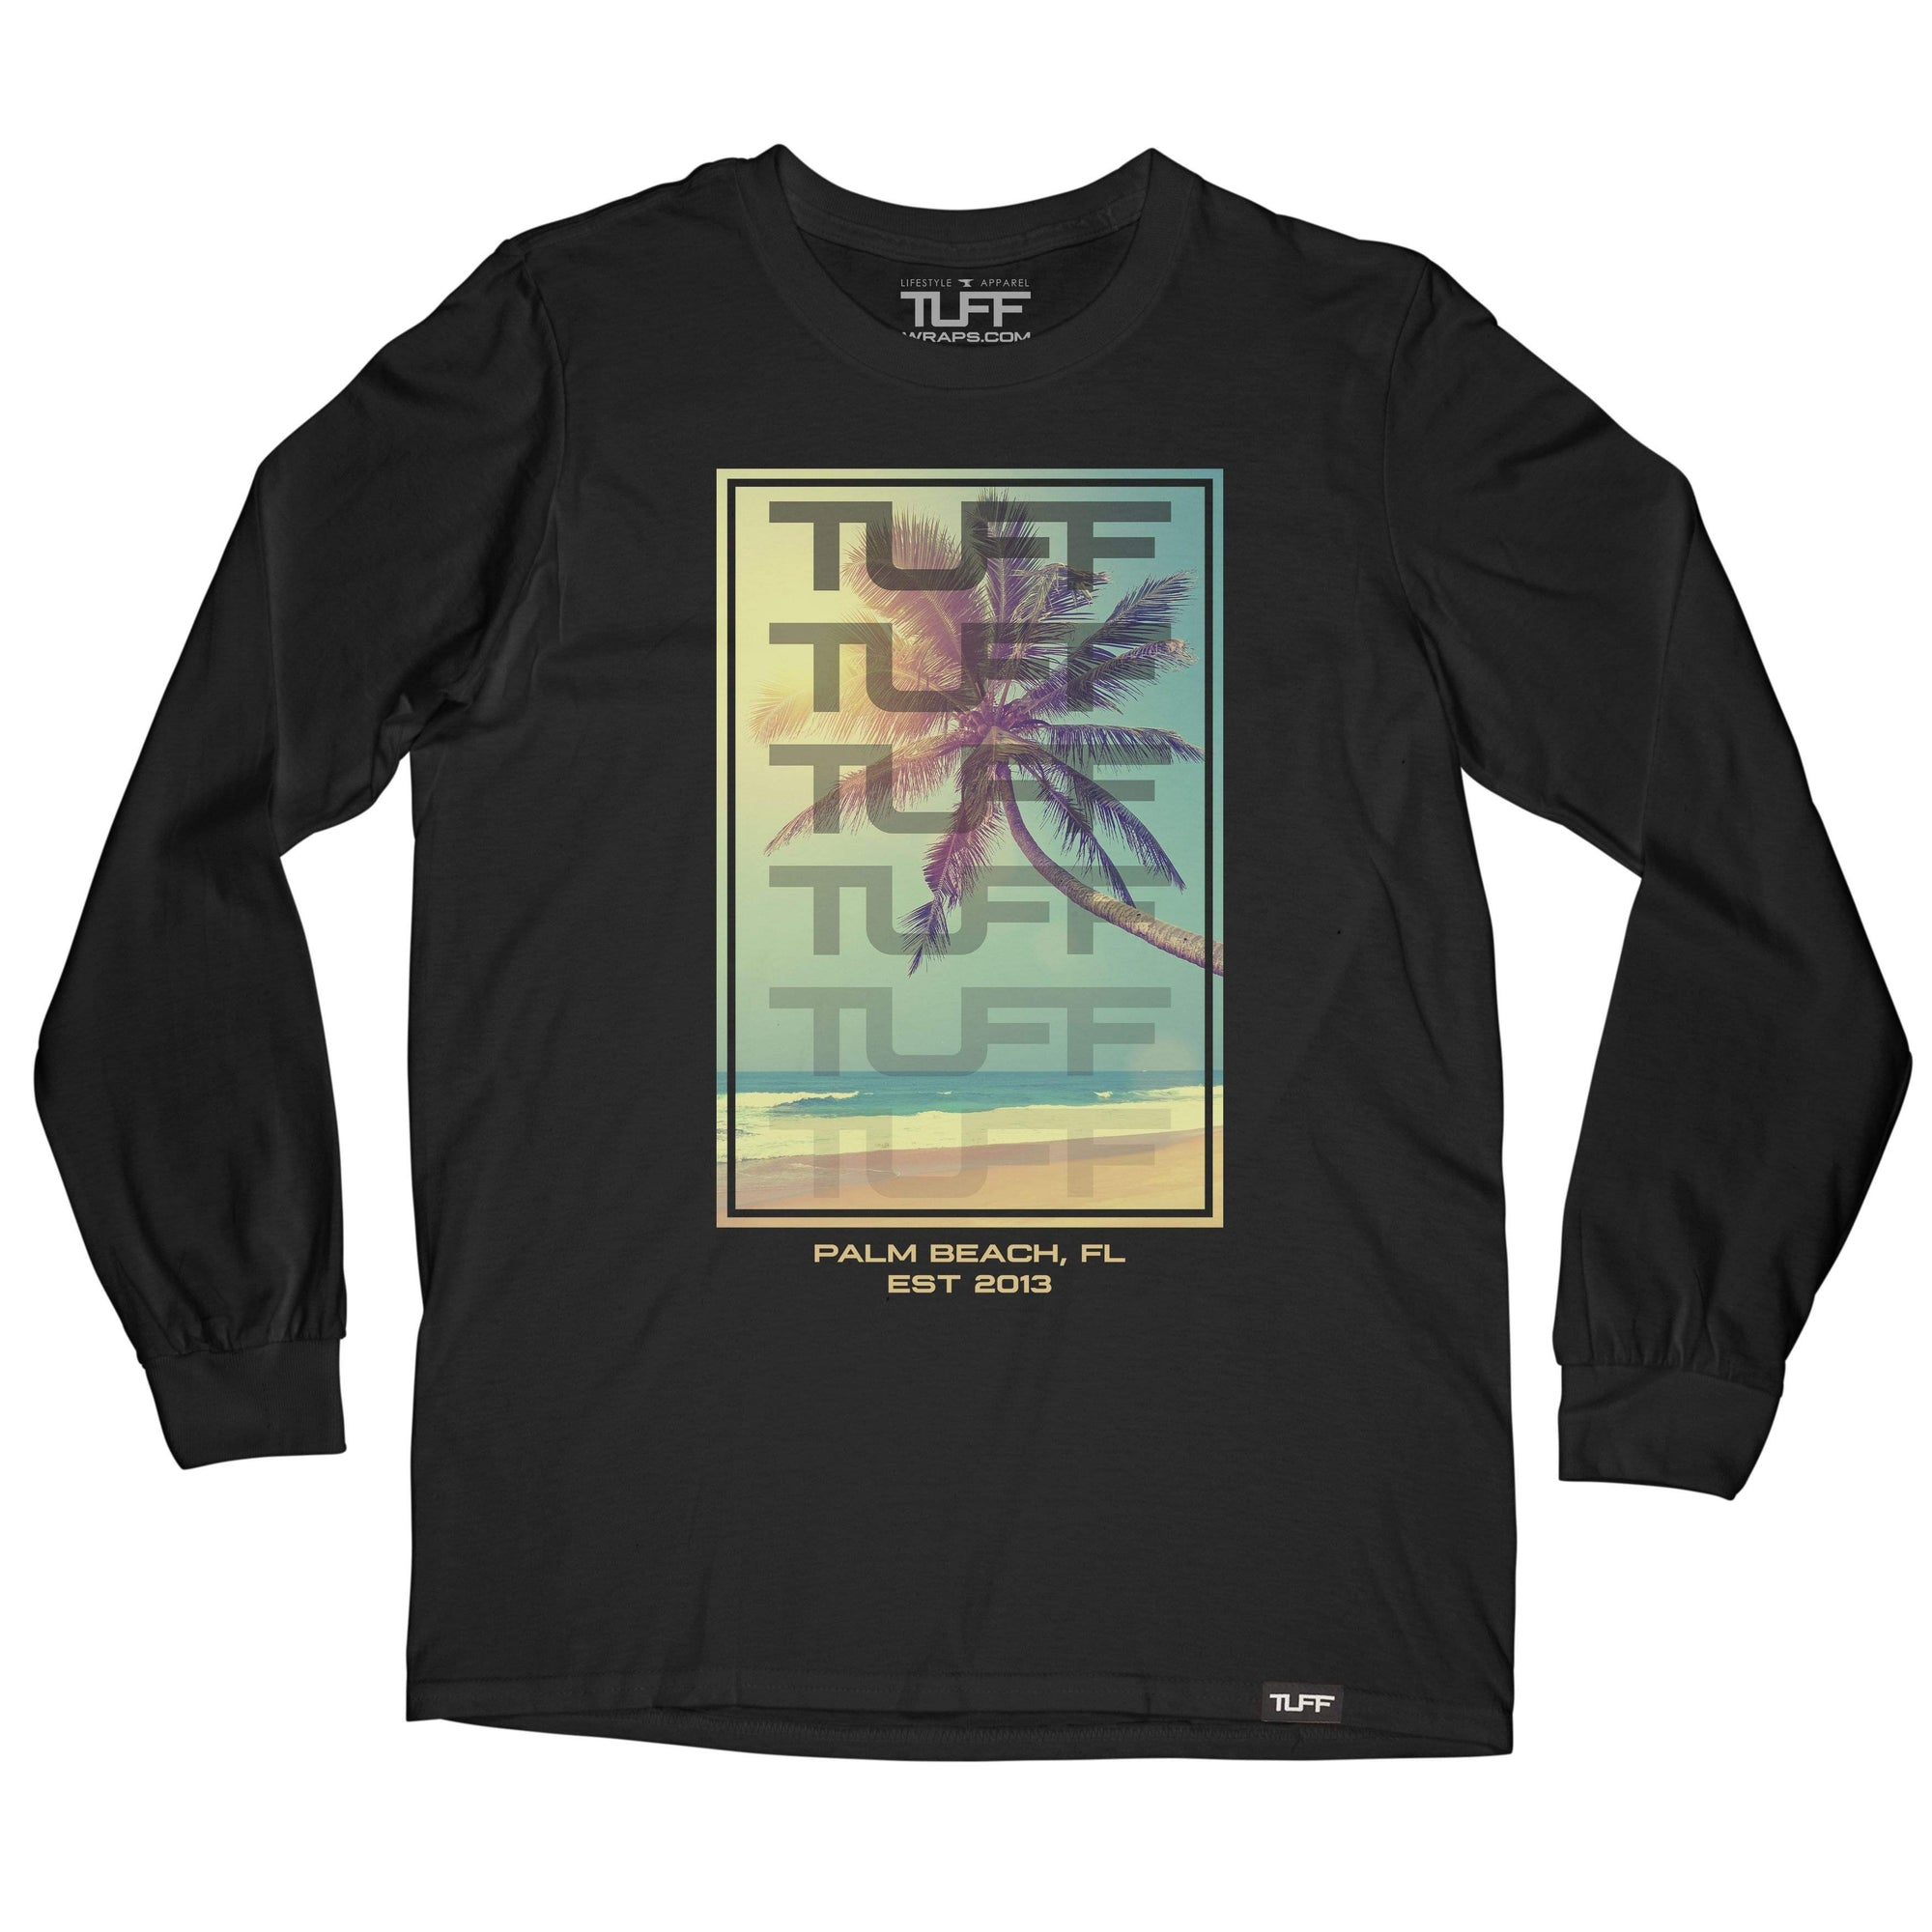 Beach Life Long Sleeve Tee S / Black TuffWraps.com